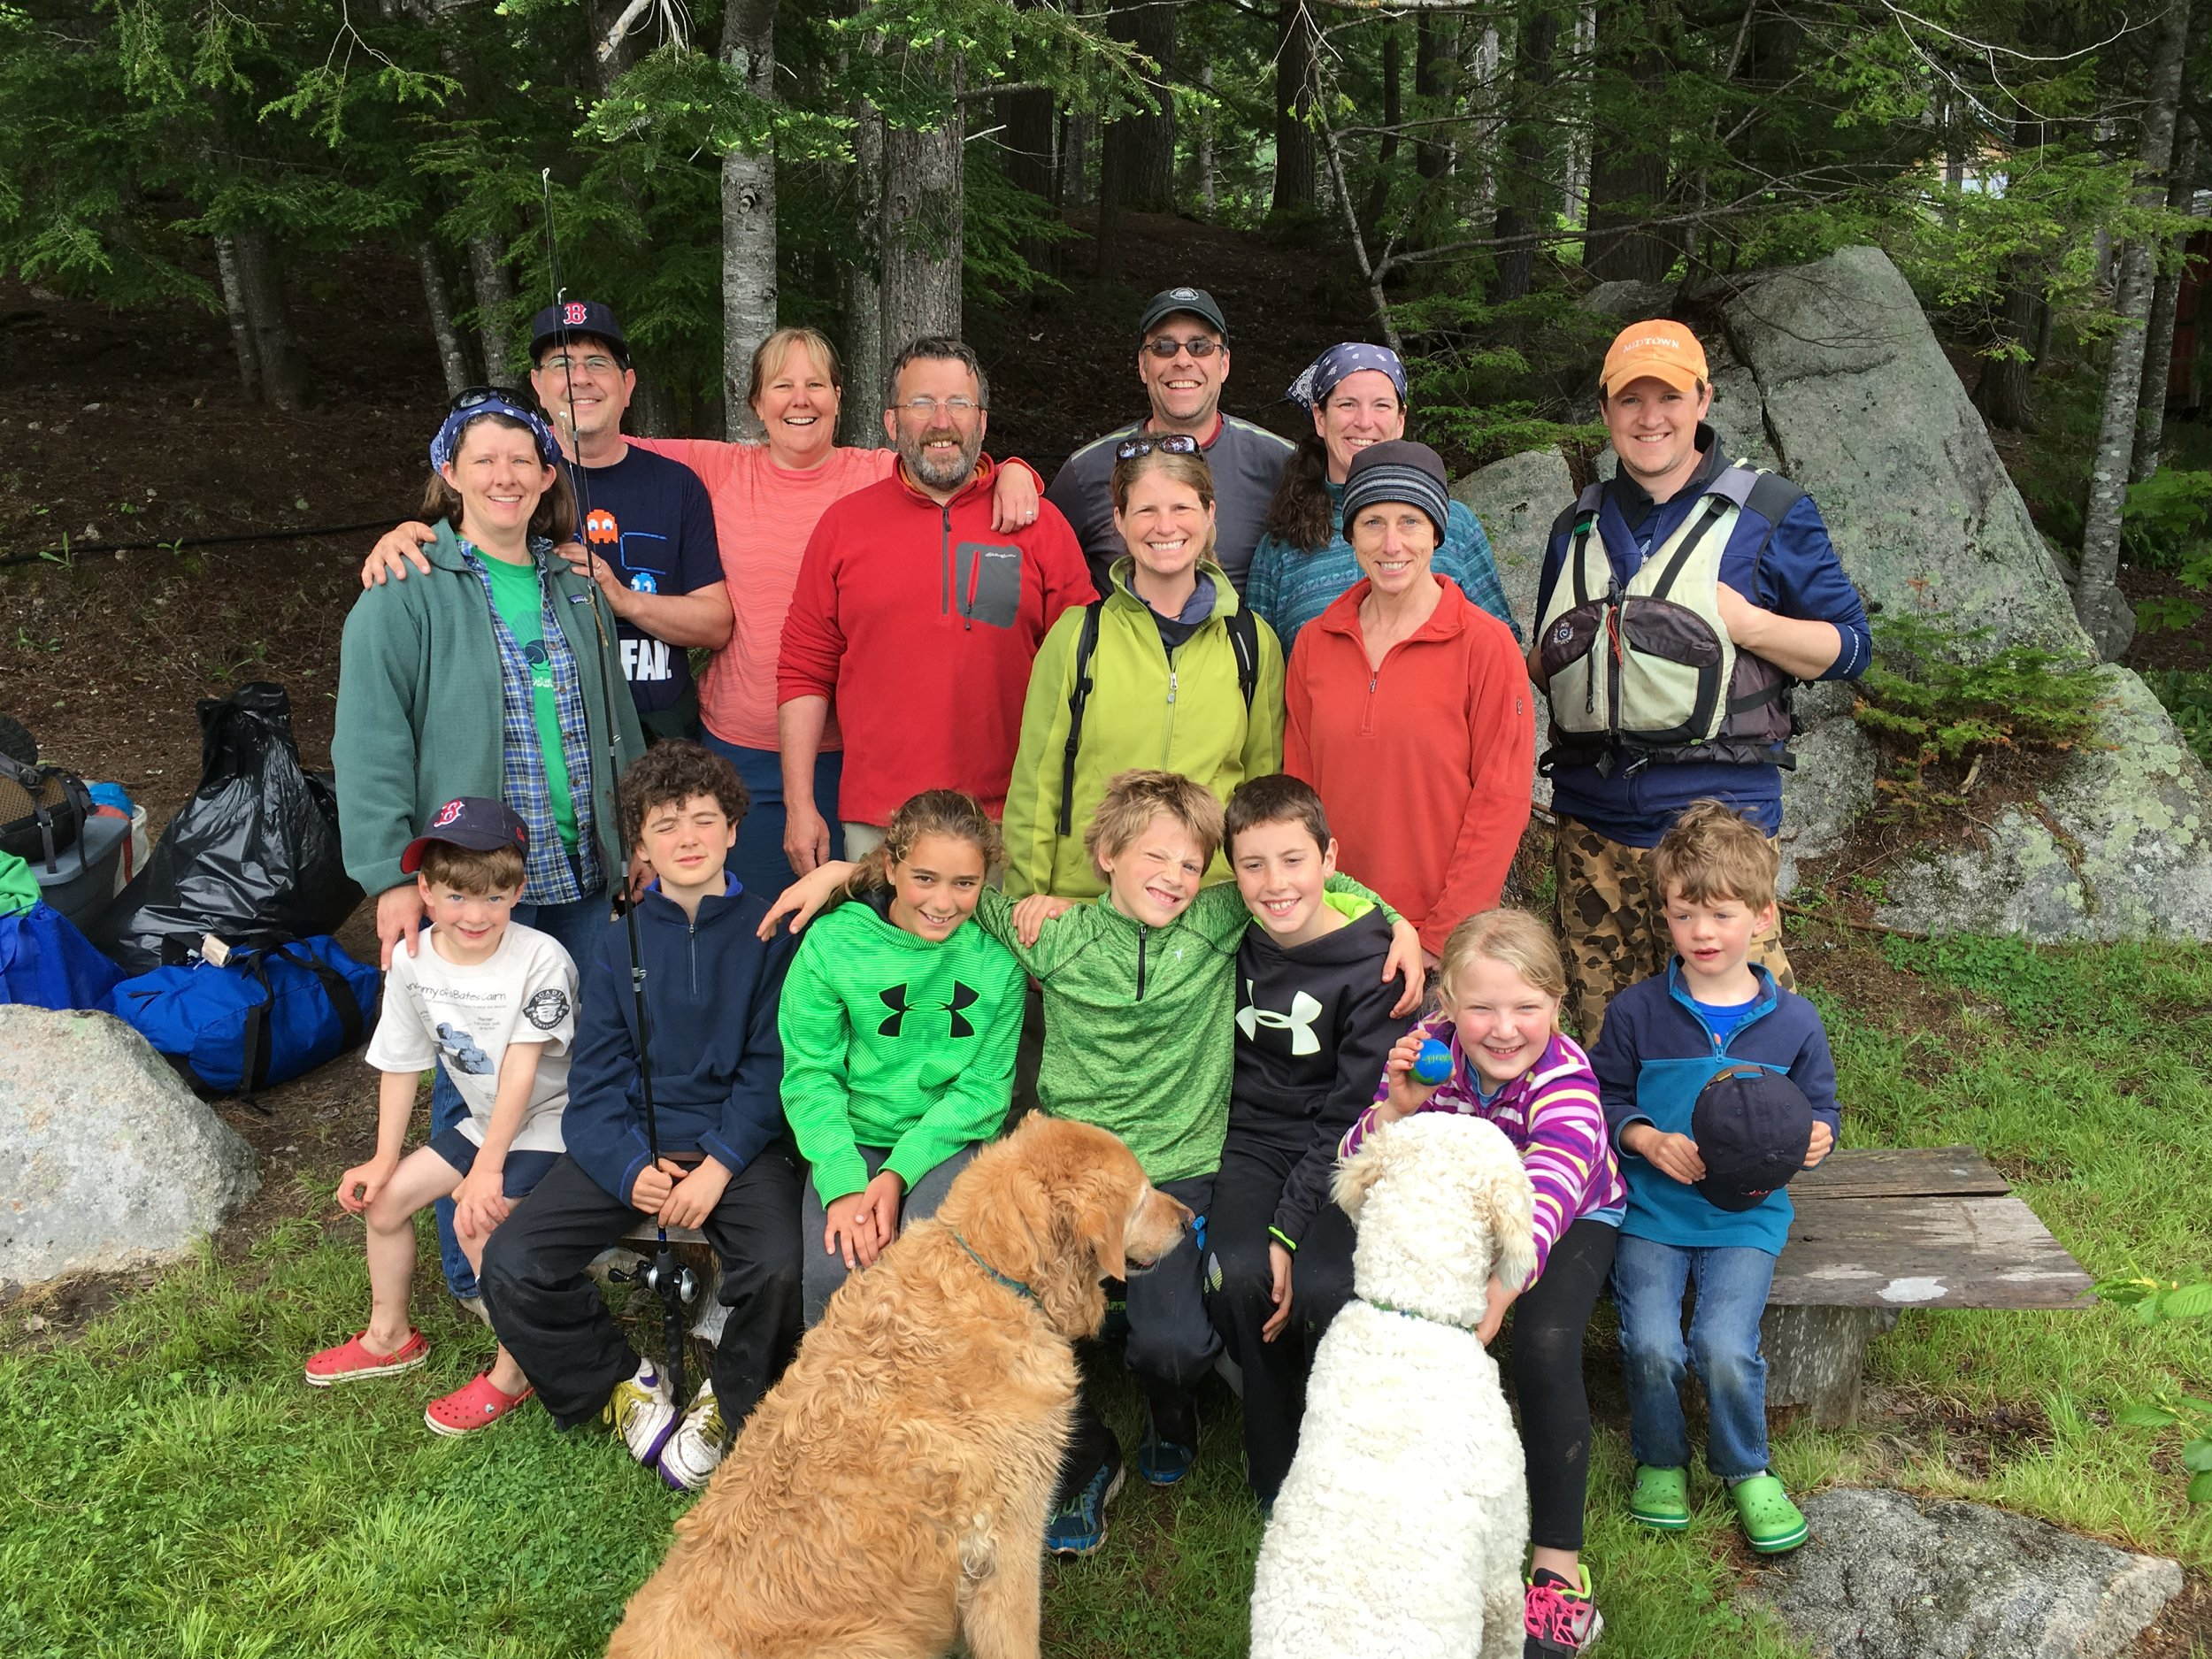 Super duper group of friends Memorial Day Weekend at Debsconeag Wilderness Camp, 2016